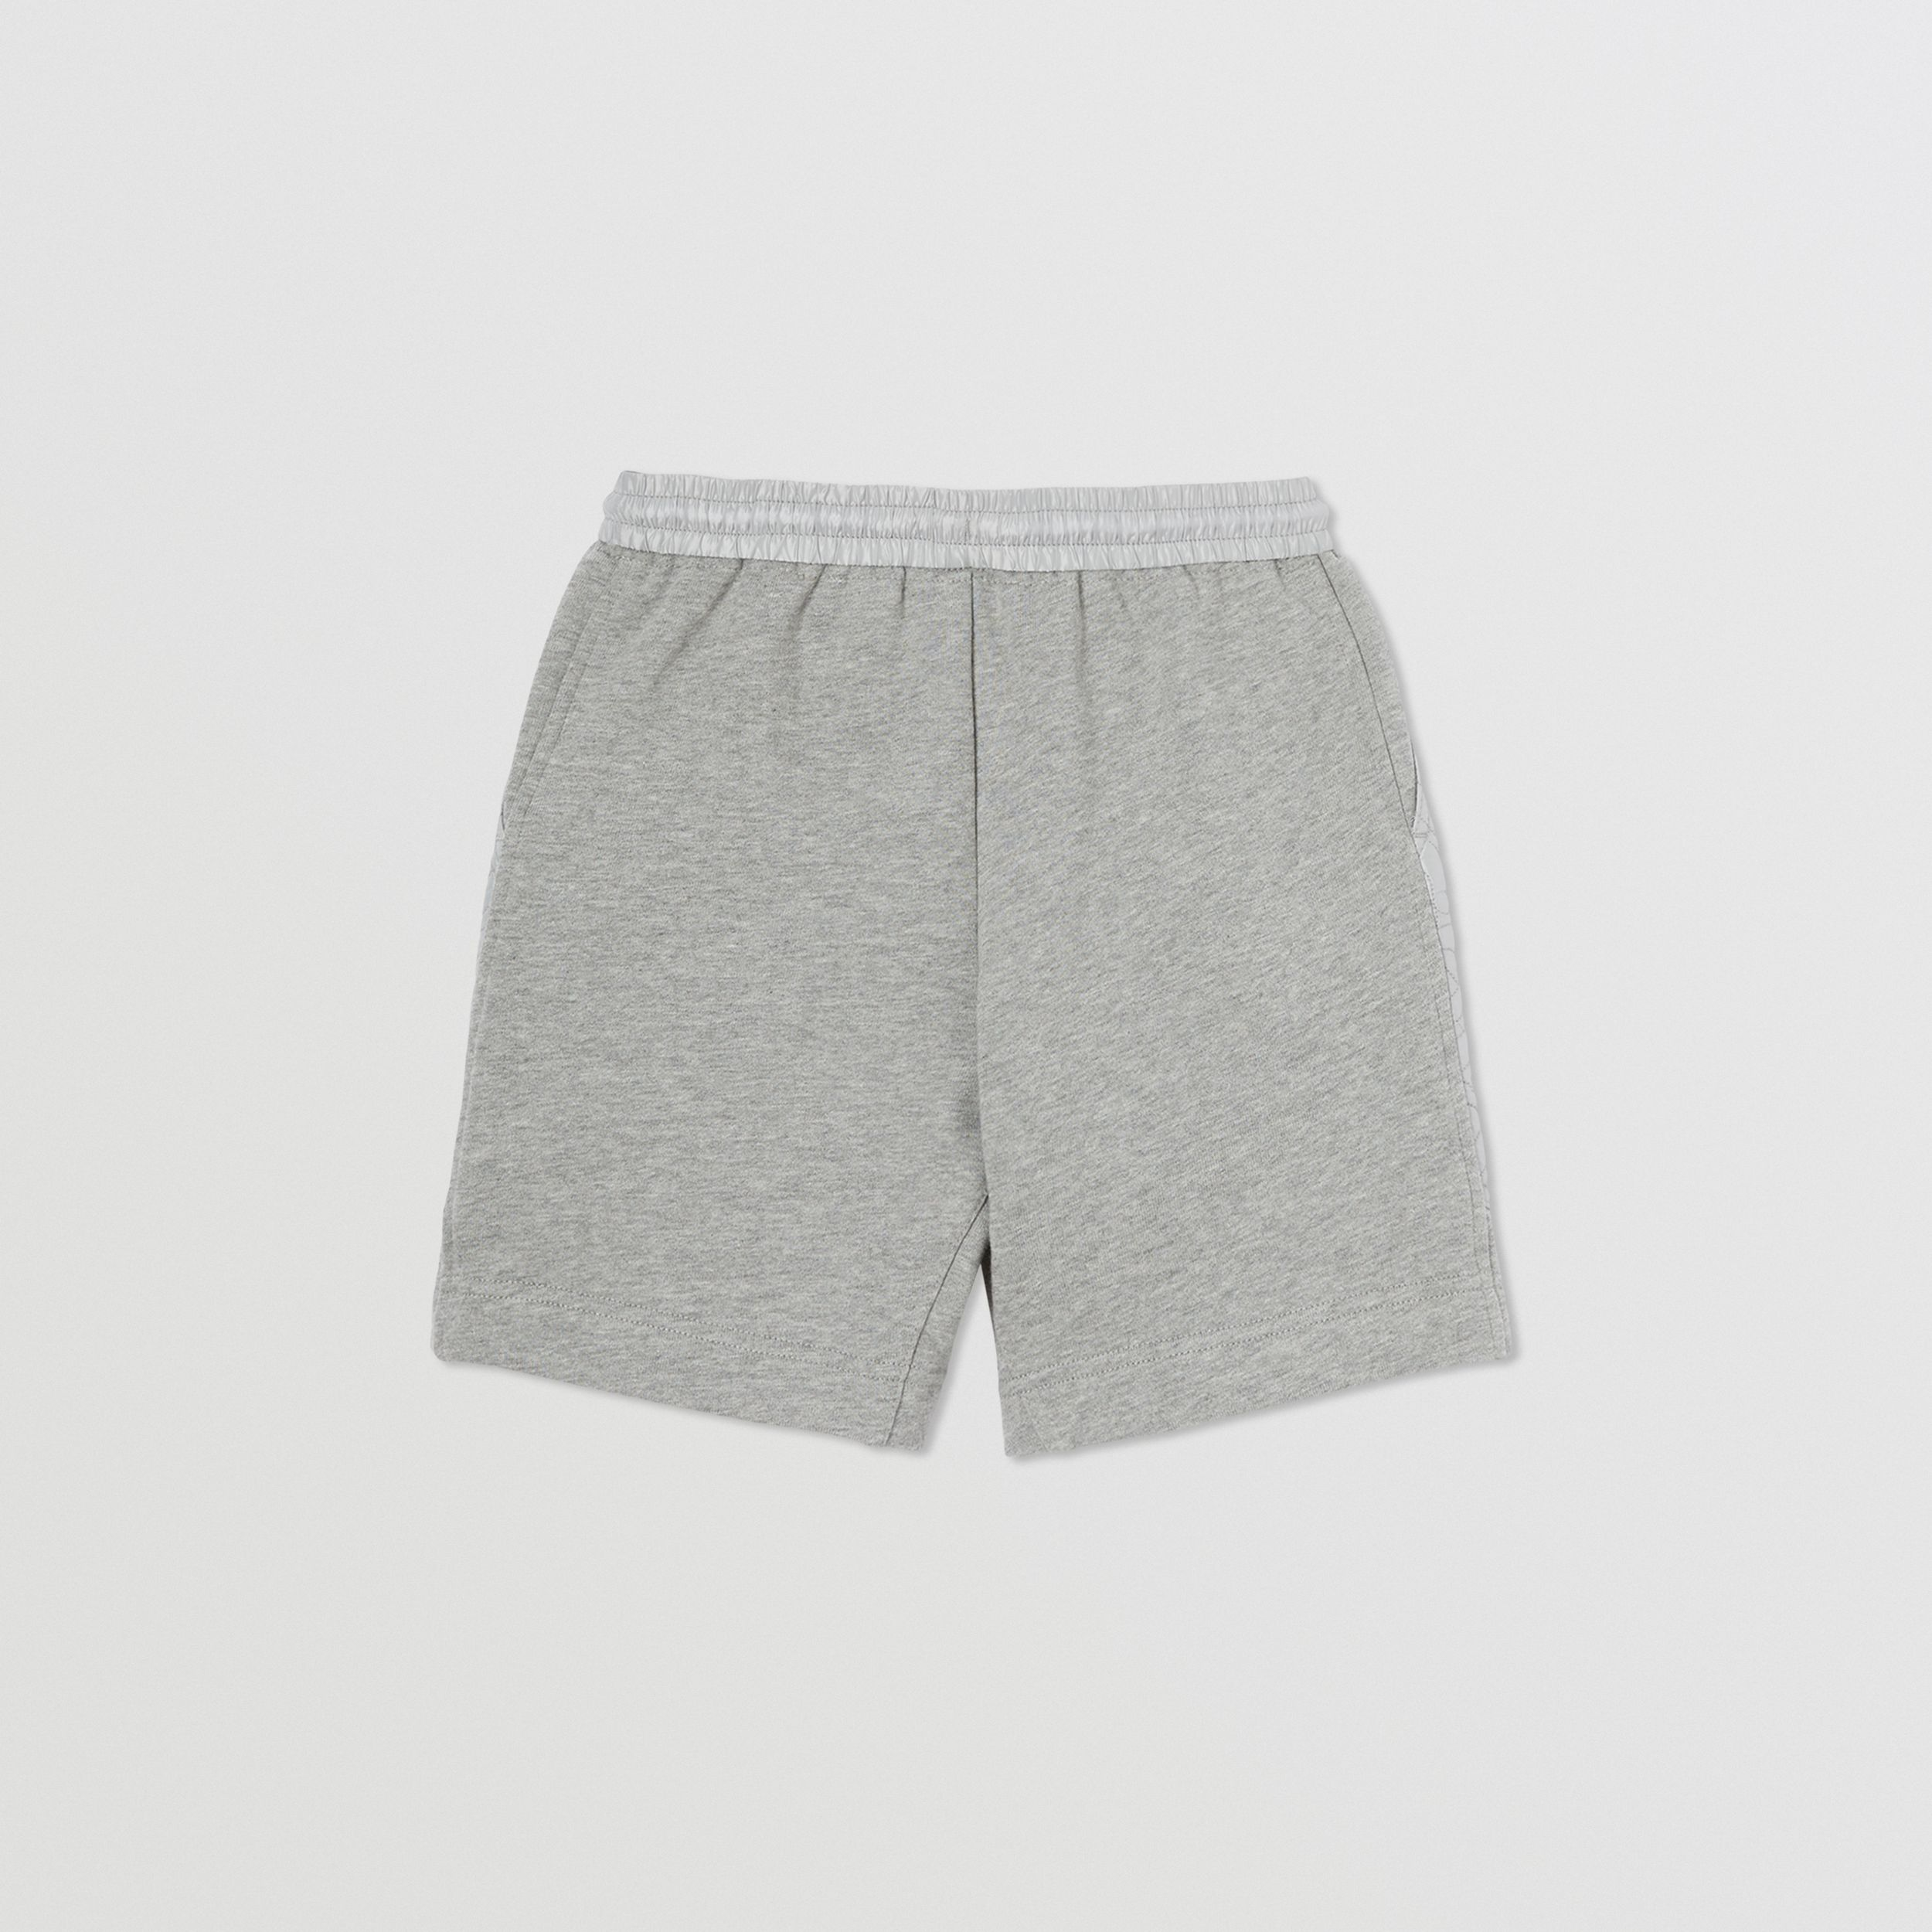 Monogram Quilted Panel Cotton Shorts in Grey Melange | Burberry - 4